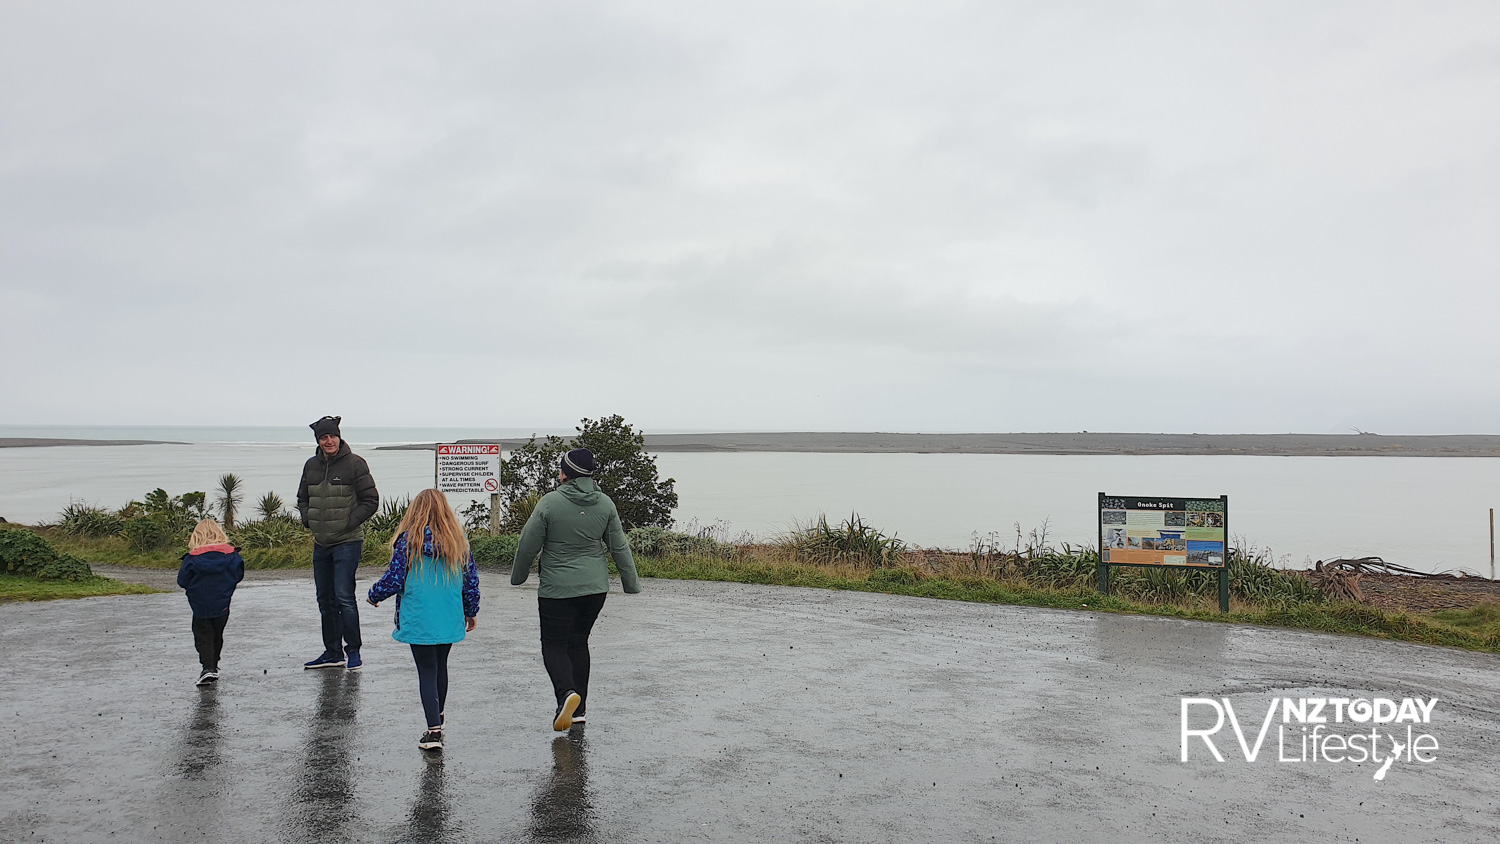 Lake Onoke or Lake Ferry, this family out for a brisk walk in the rain